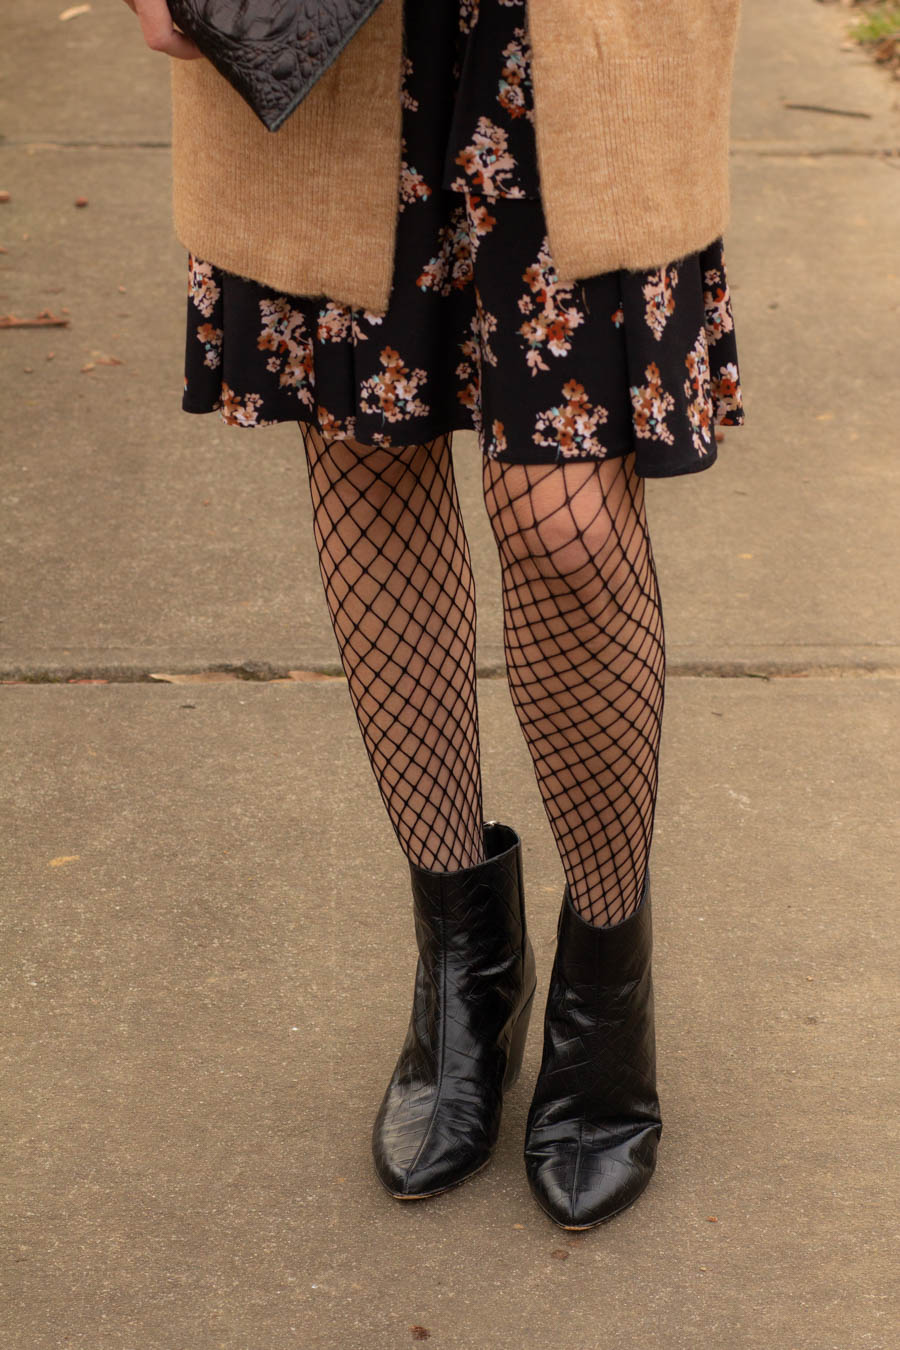 Dark floral with fish net stockings